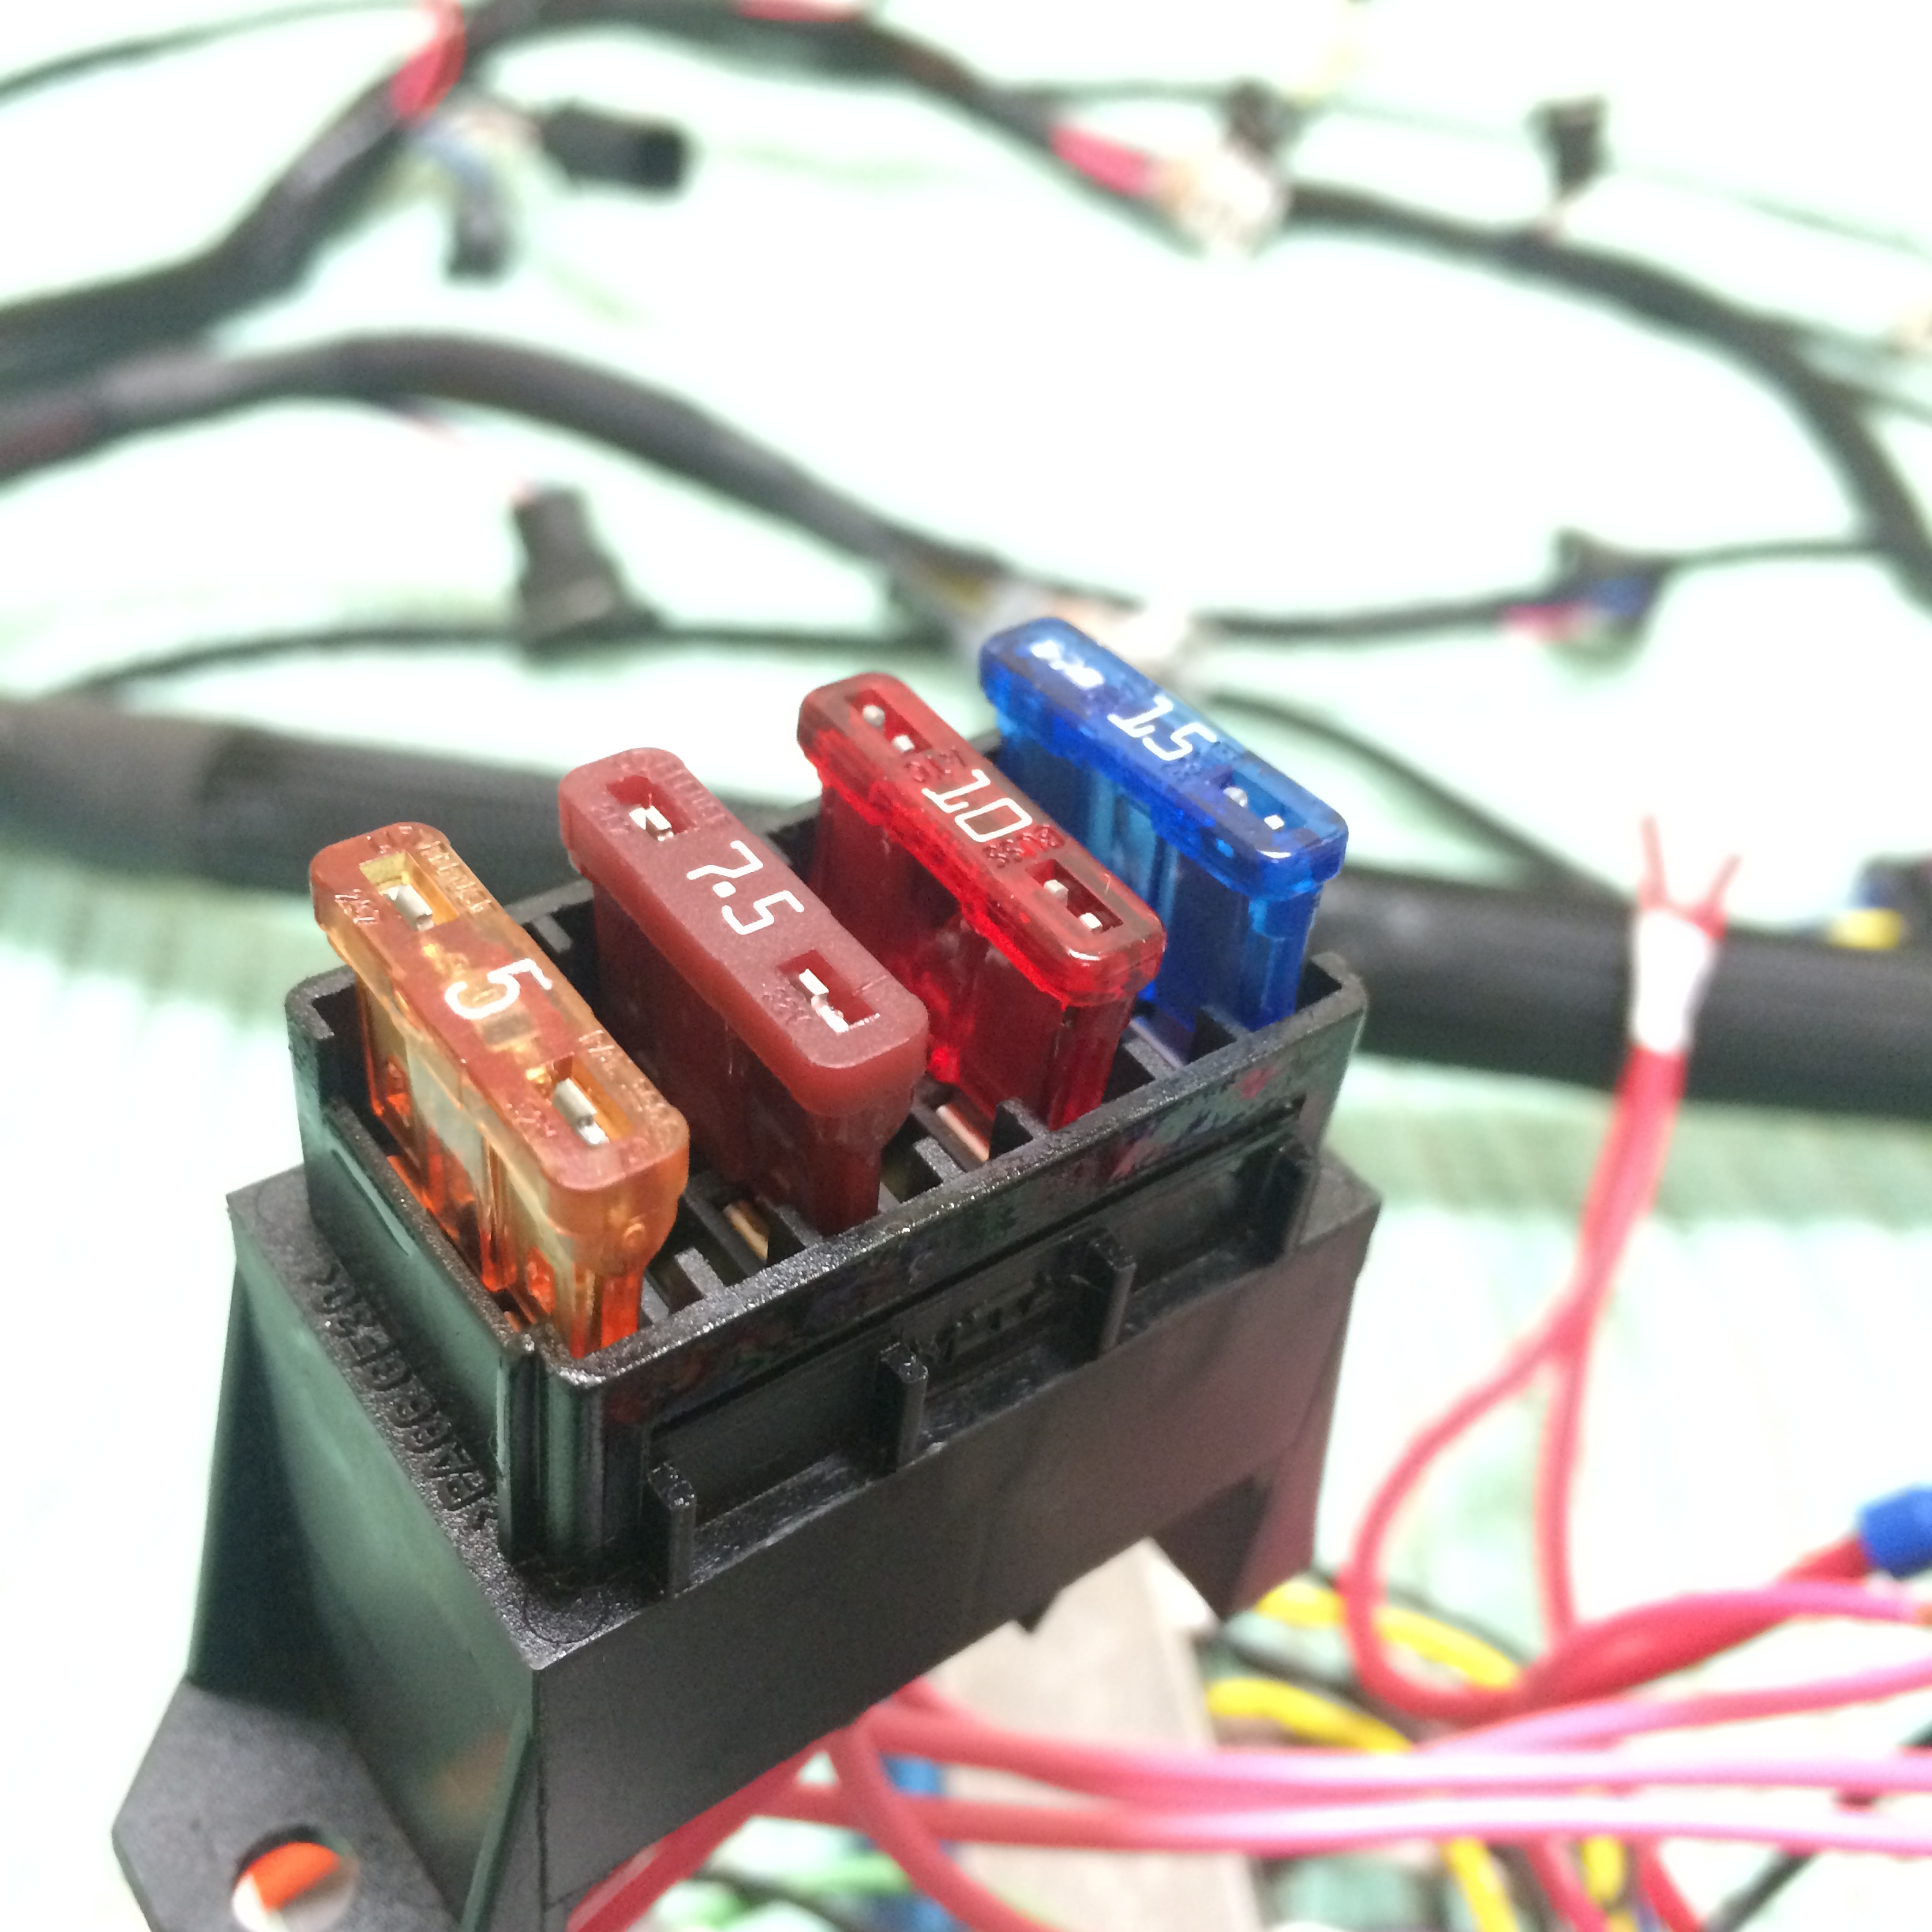 gm ls engine harnesses under the hood brand new connectors not a cut down harness brand new terminals crimped like factory brand new wires no ering joints fuse box included for as plug